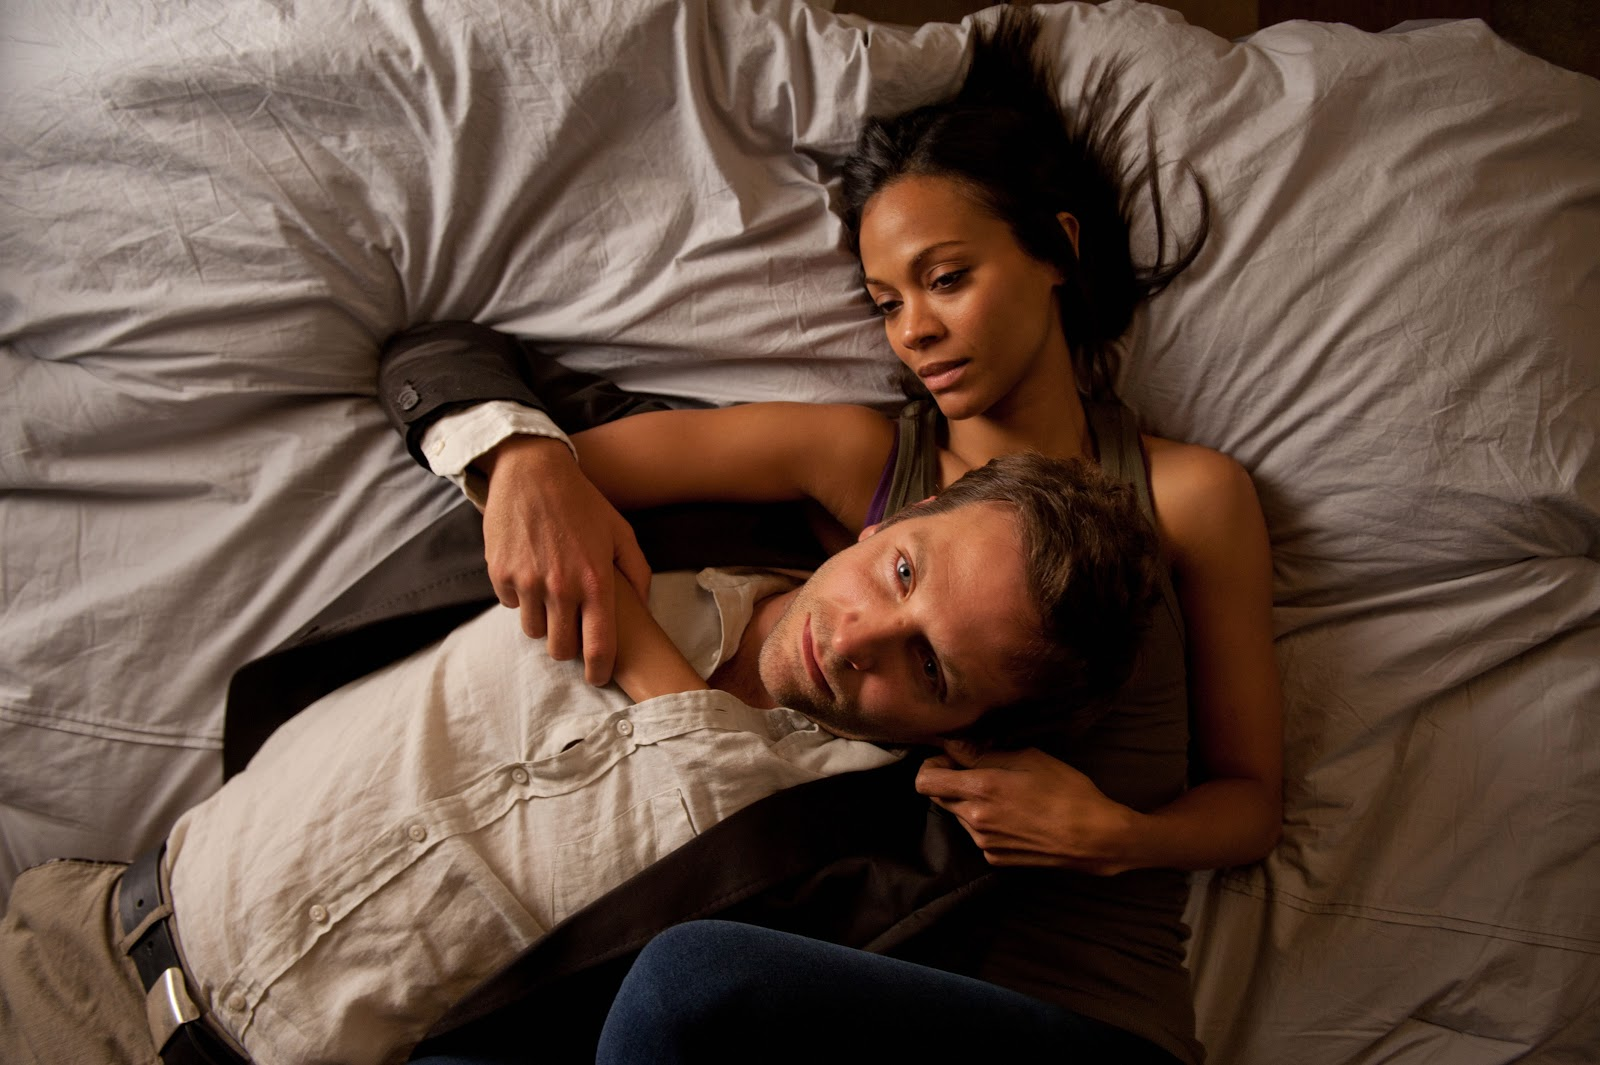 http://2.bp.blogspot.com/-hQ6-kb0vt34/UMX59ovjPqI/AAAAAAAAVNE/9DazdNvaiOY/s1600/the-words-movie-image-bradley-cooper-zoe-saldana-01.jpg